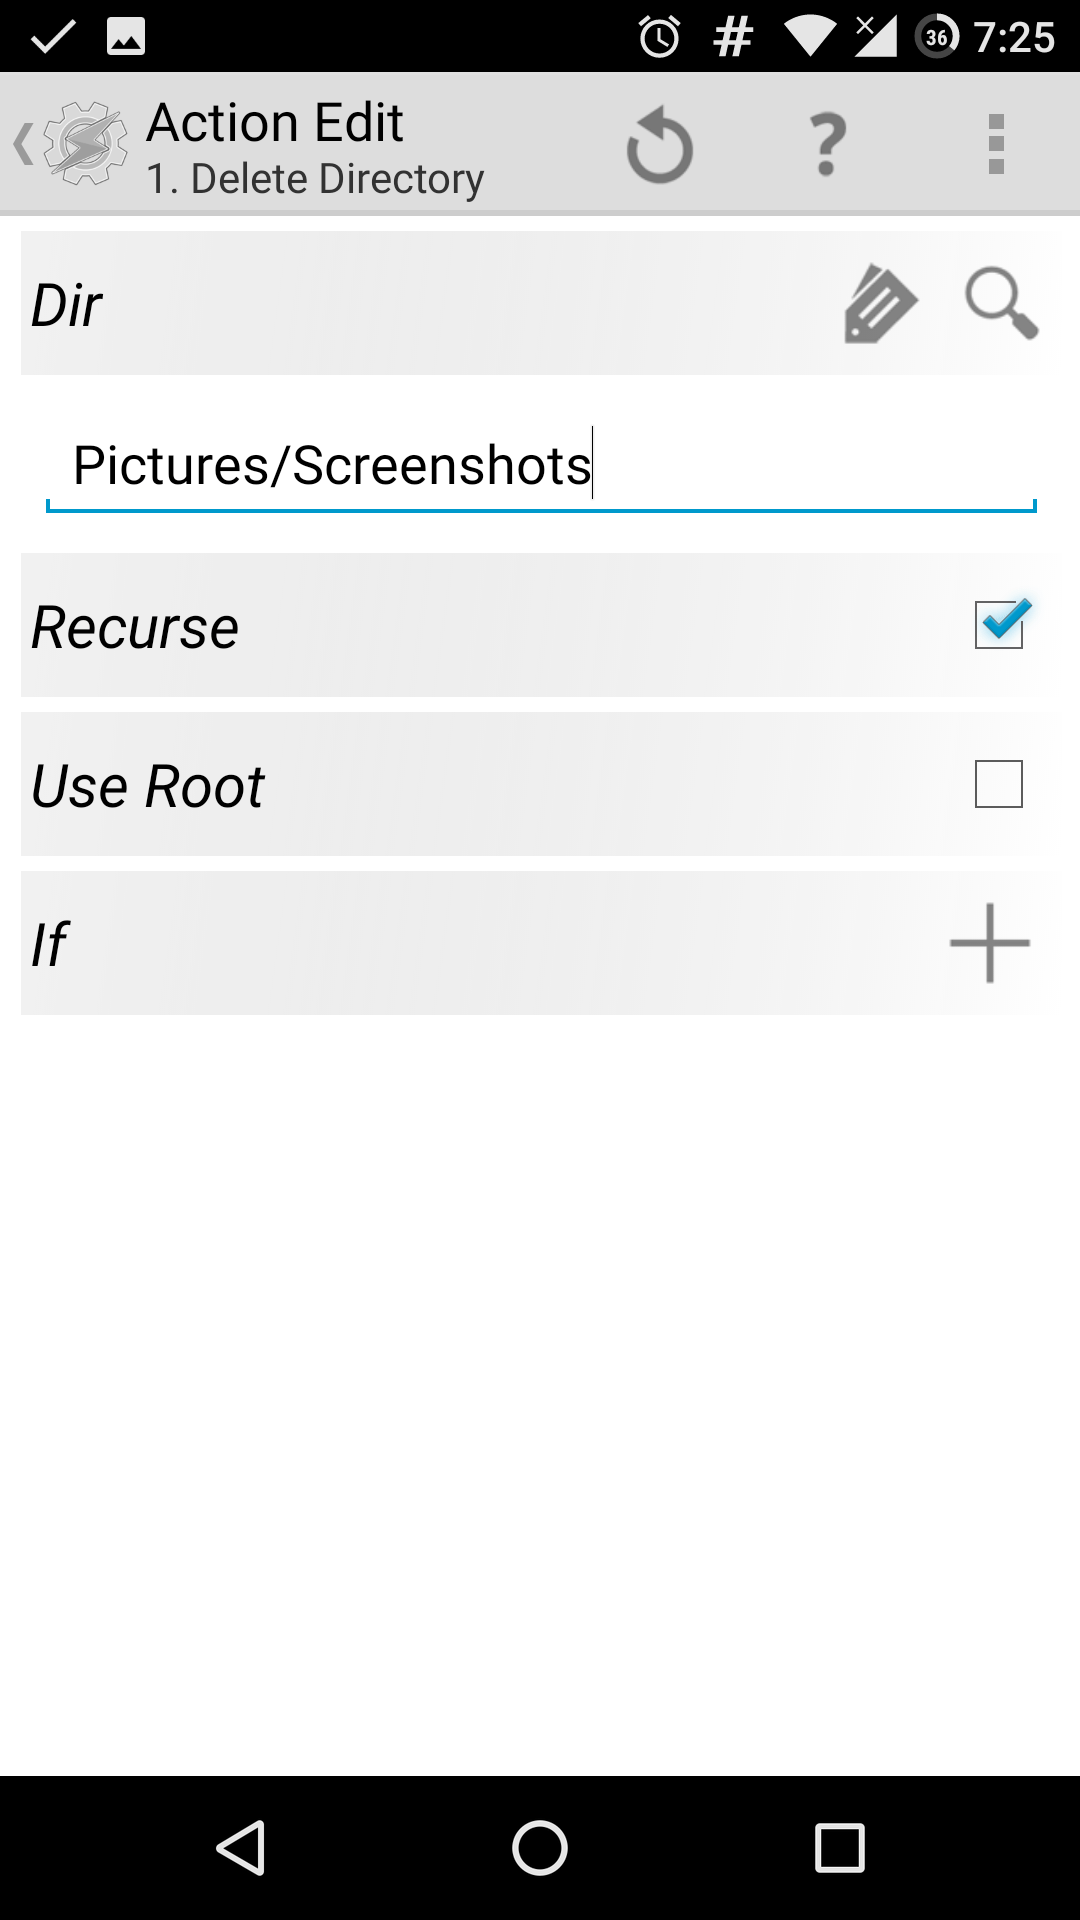 how to delete an account on my android device